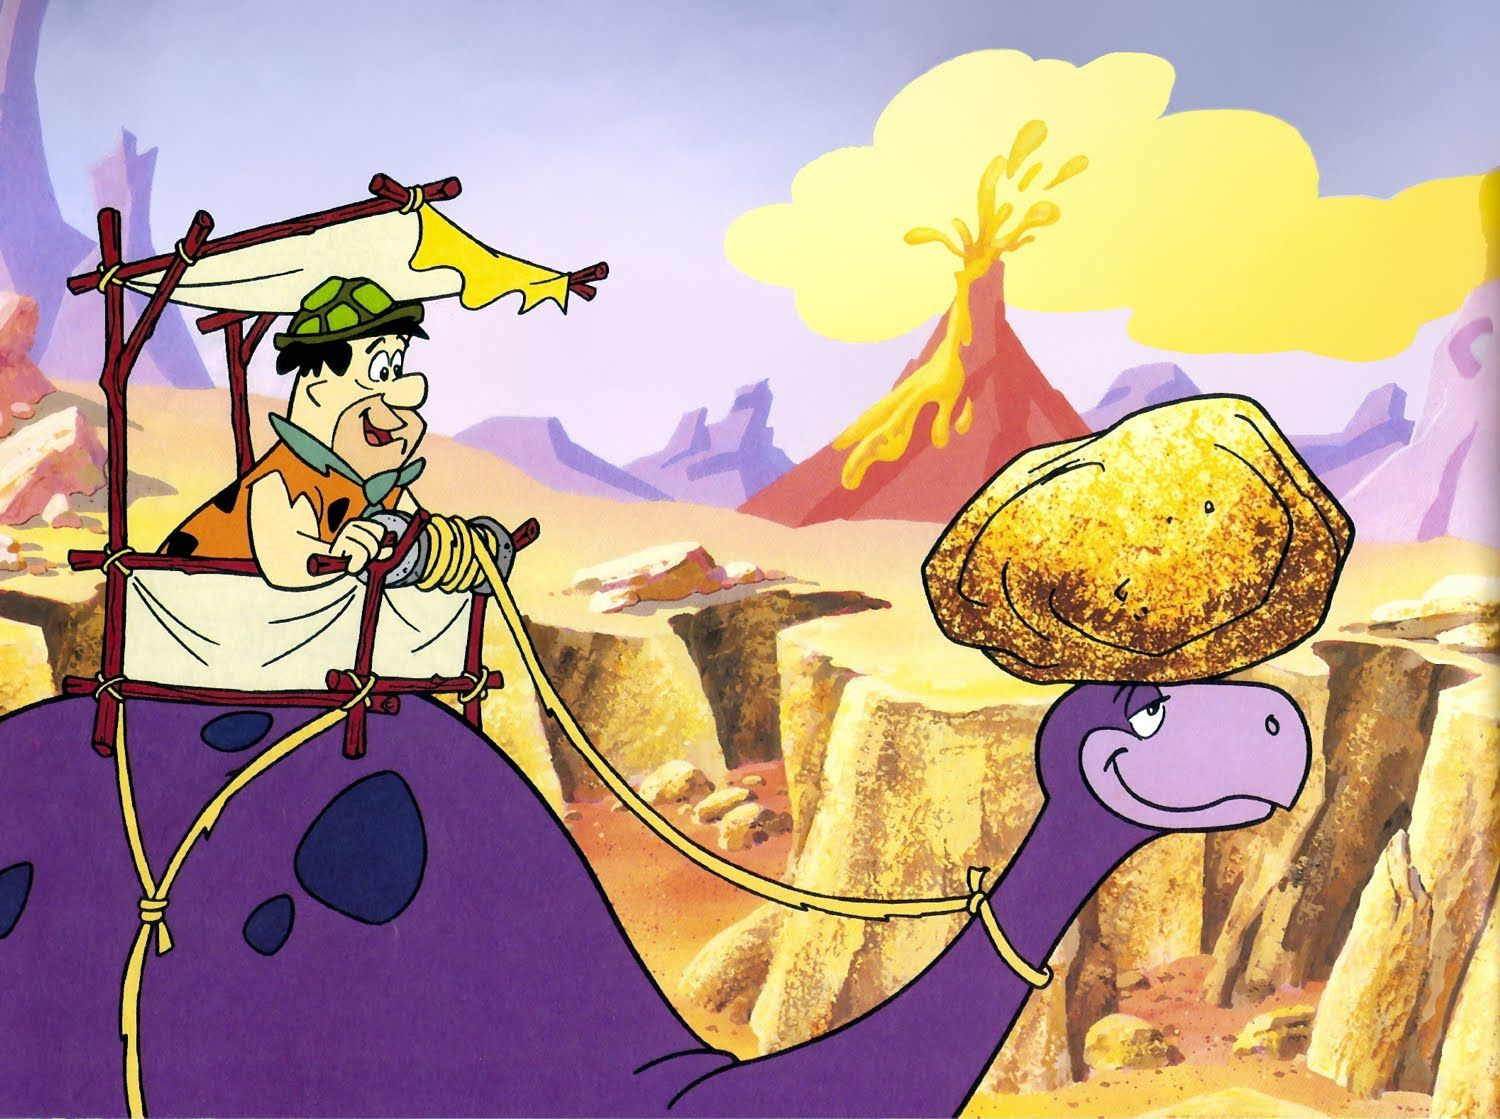 Filme Os Flintstones throughout flintstones | os flintstones | - desenhos animados, longas etc